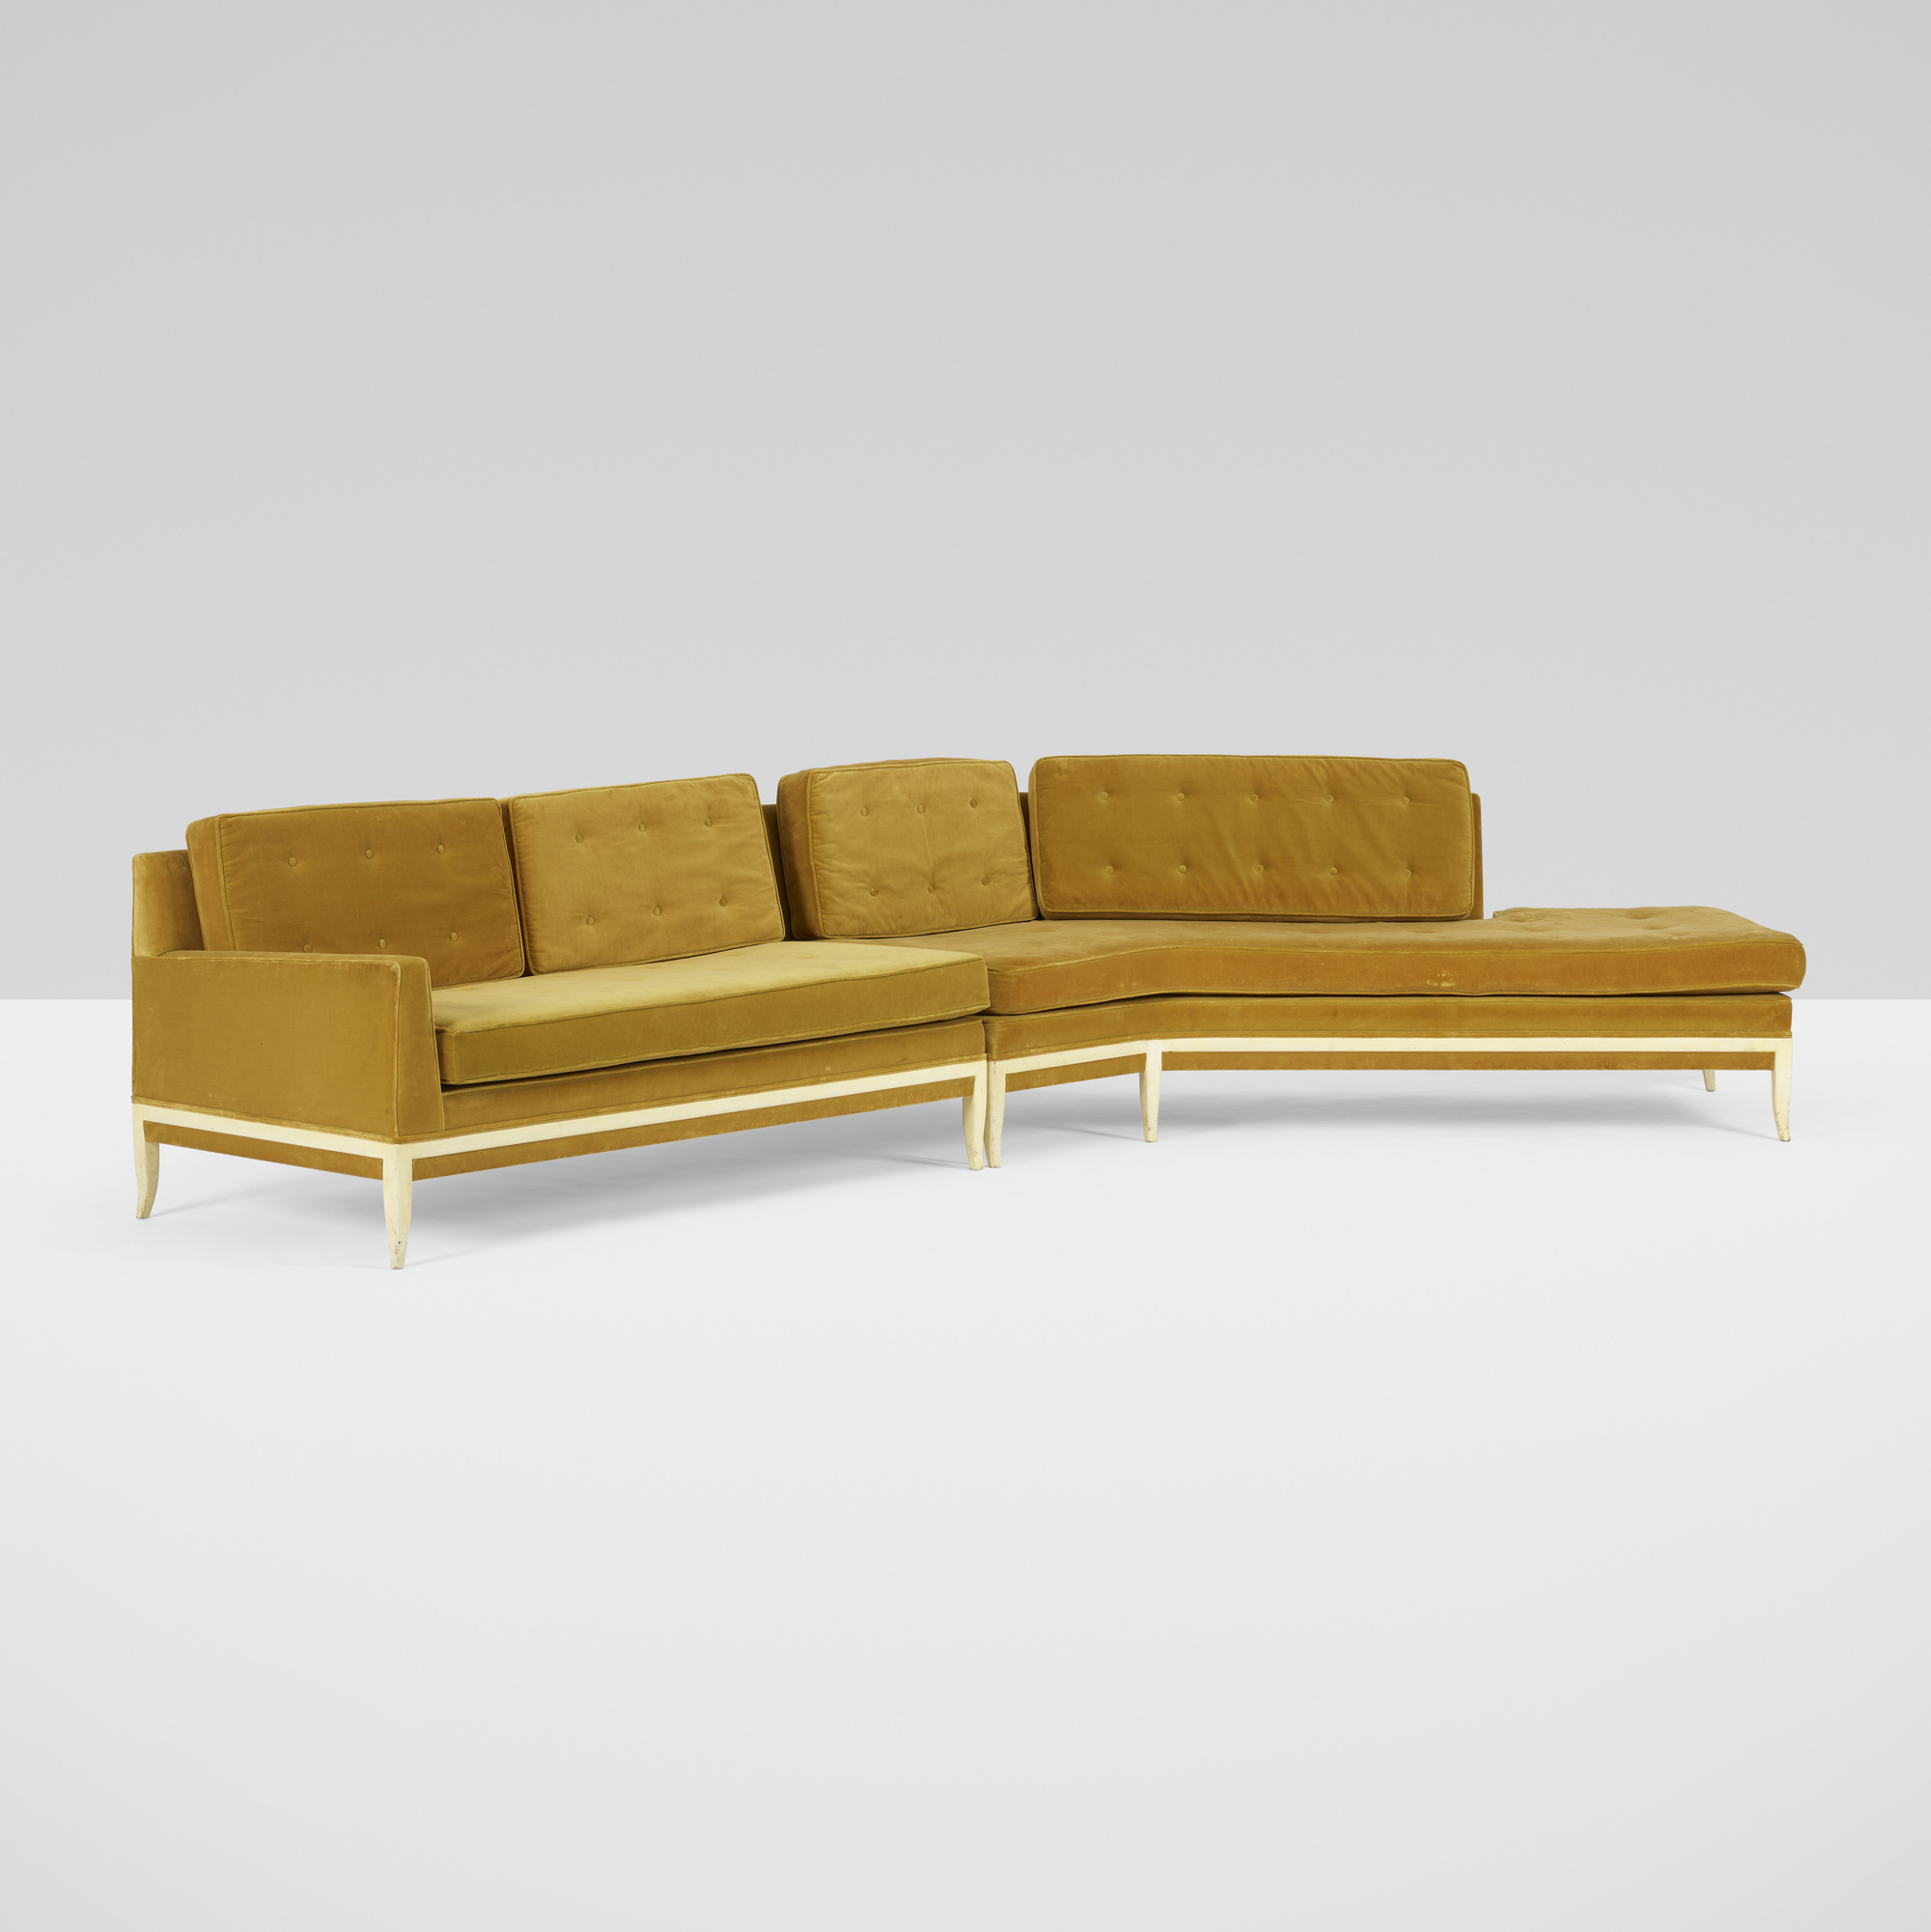 392: Tommi Parzinger / sectional sofa (2 of 3)